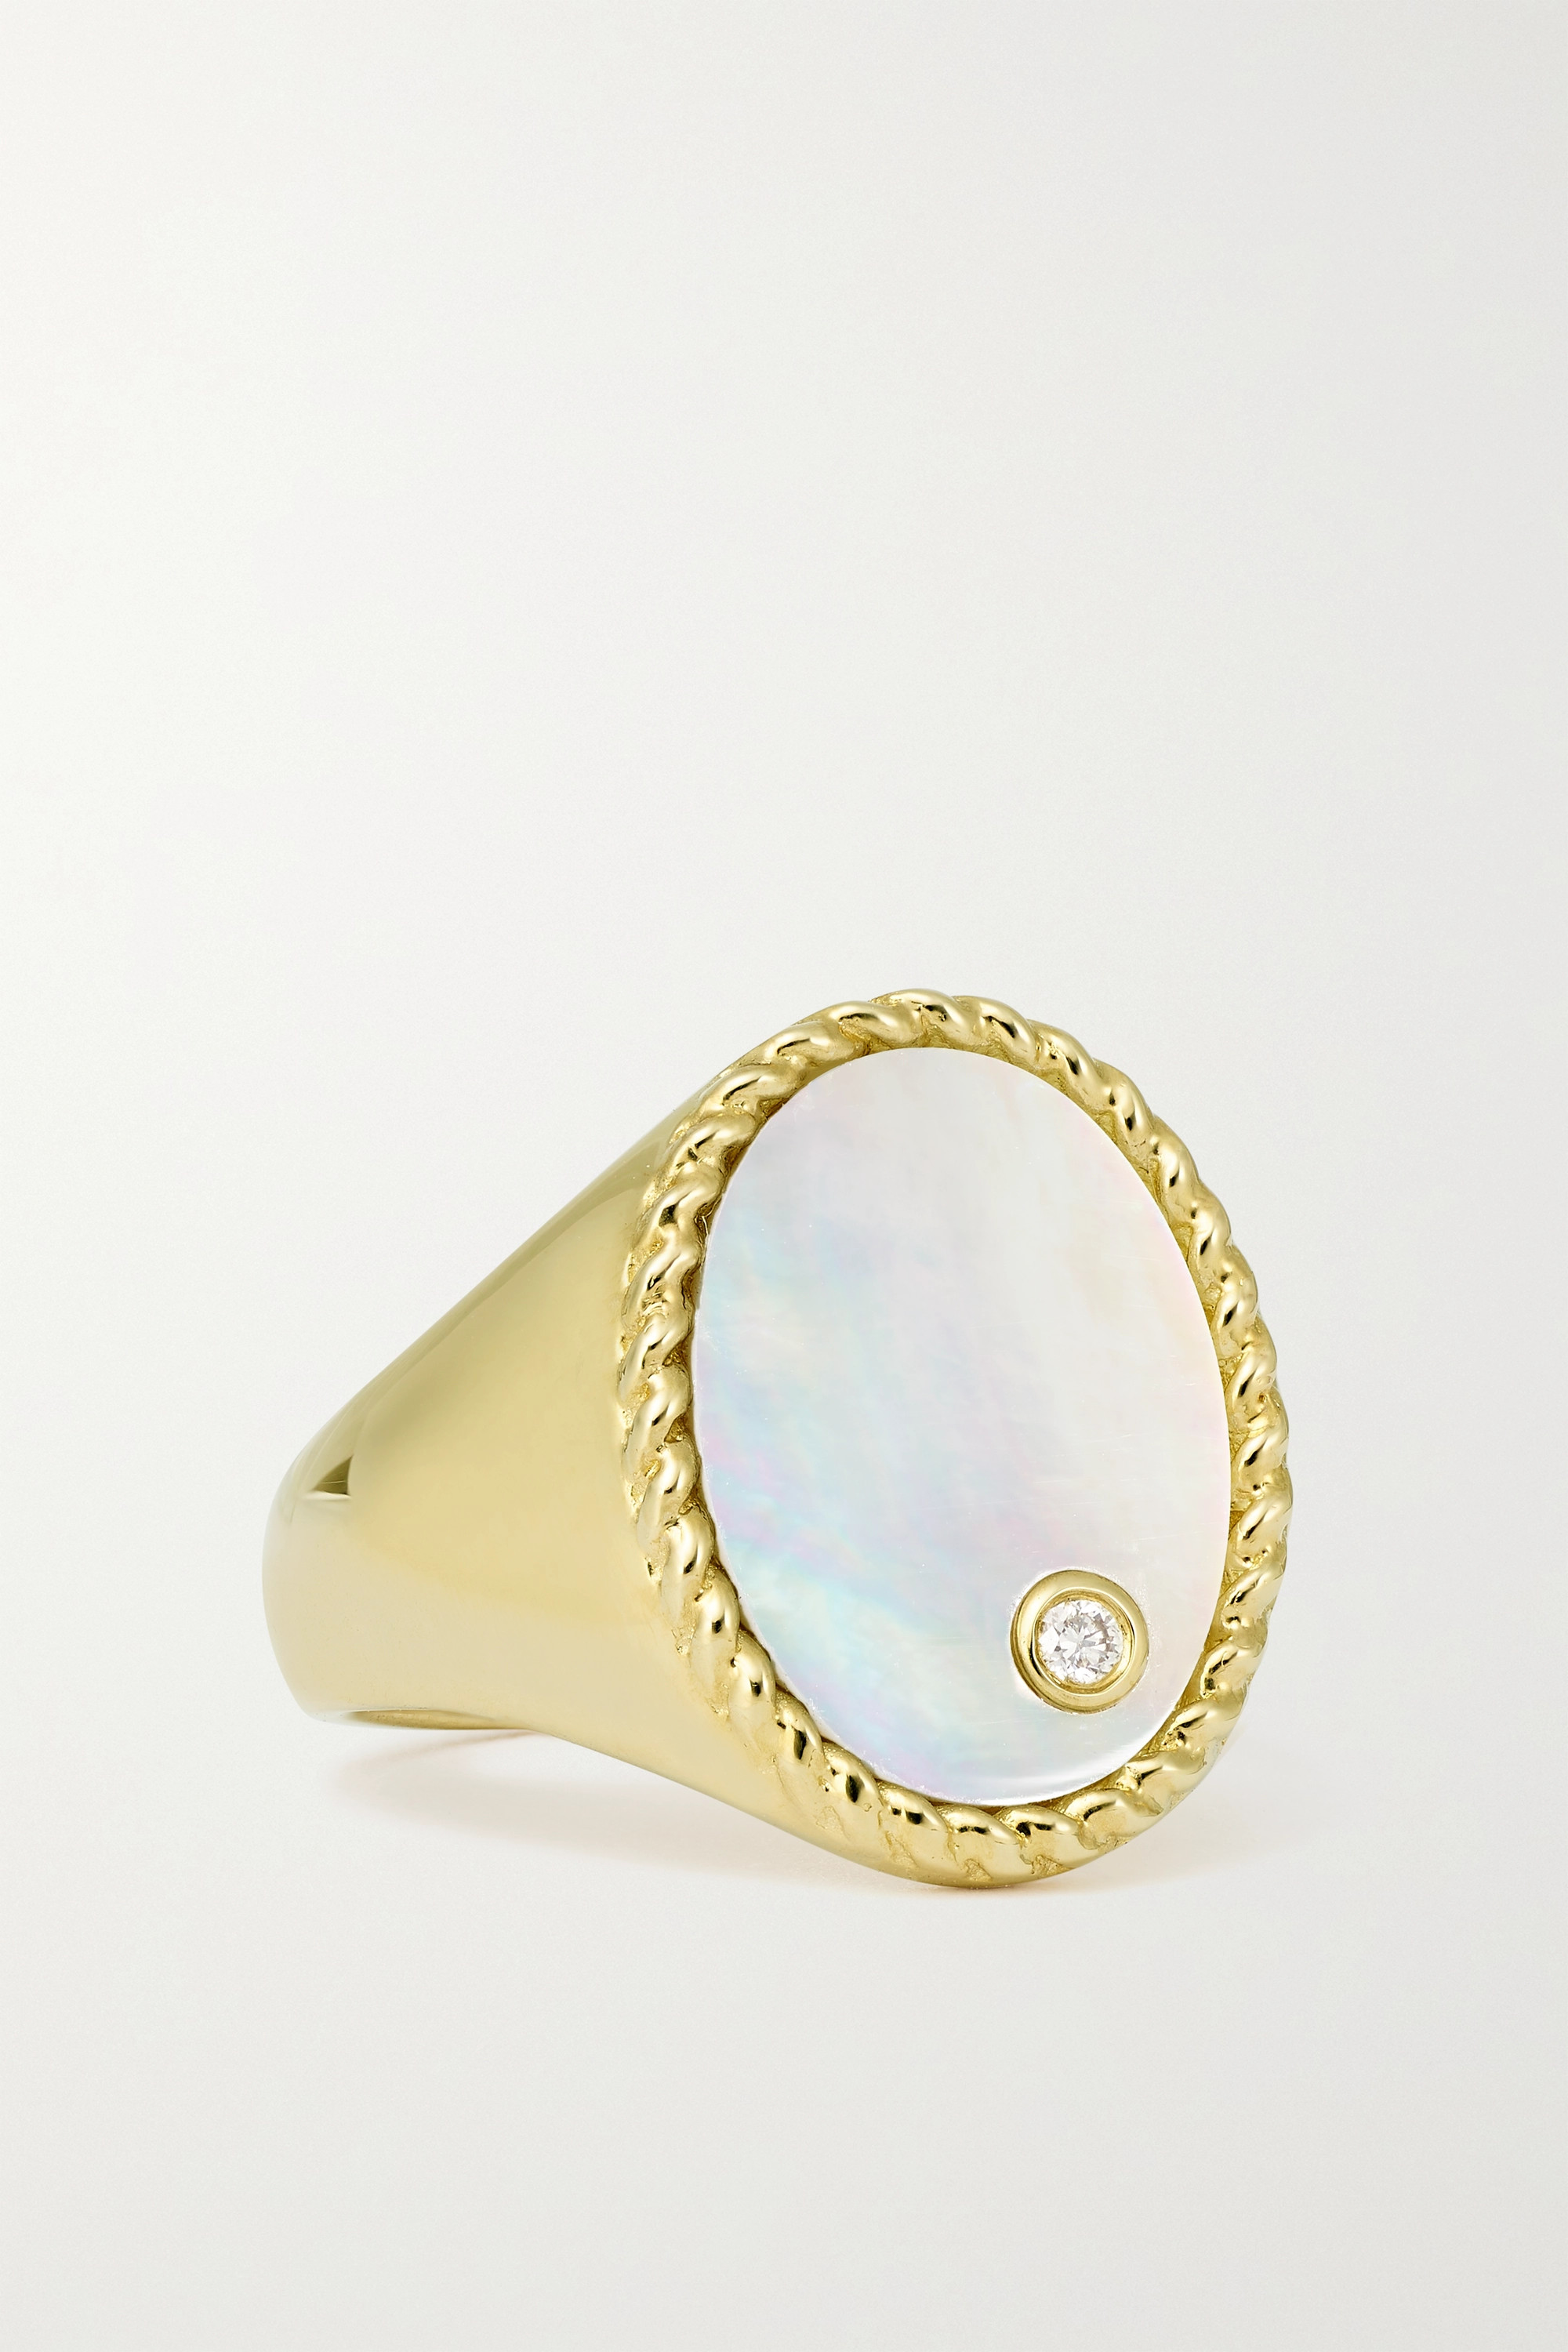 Yvonne Léon - 9-karat gold, mother-of-pearl and diamond ring